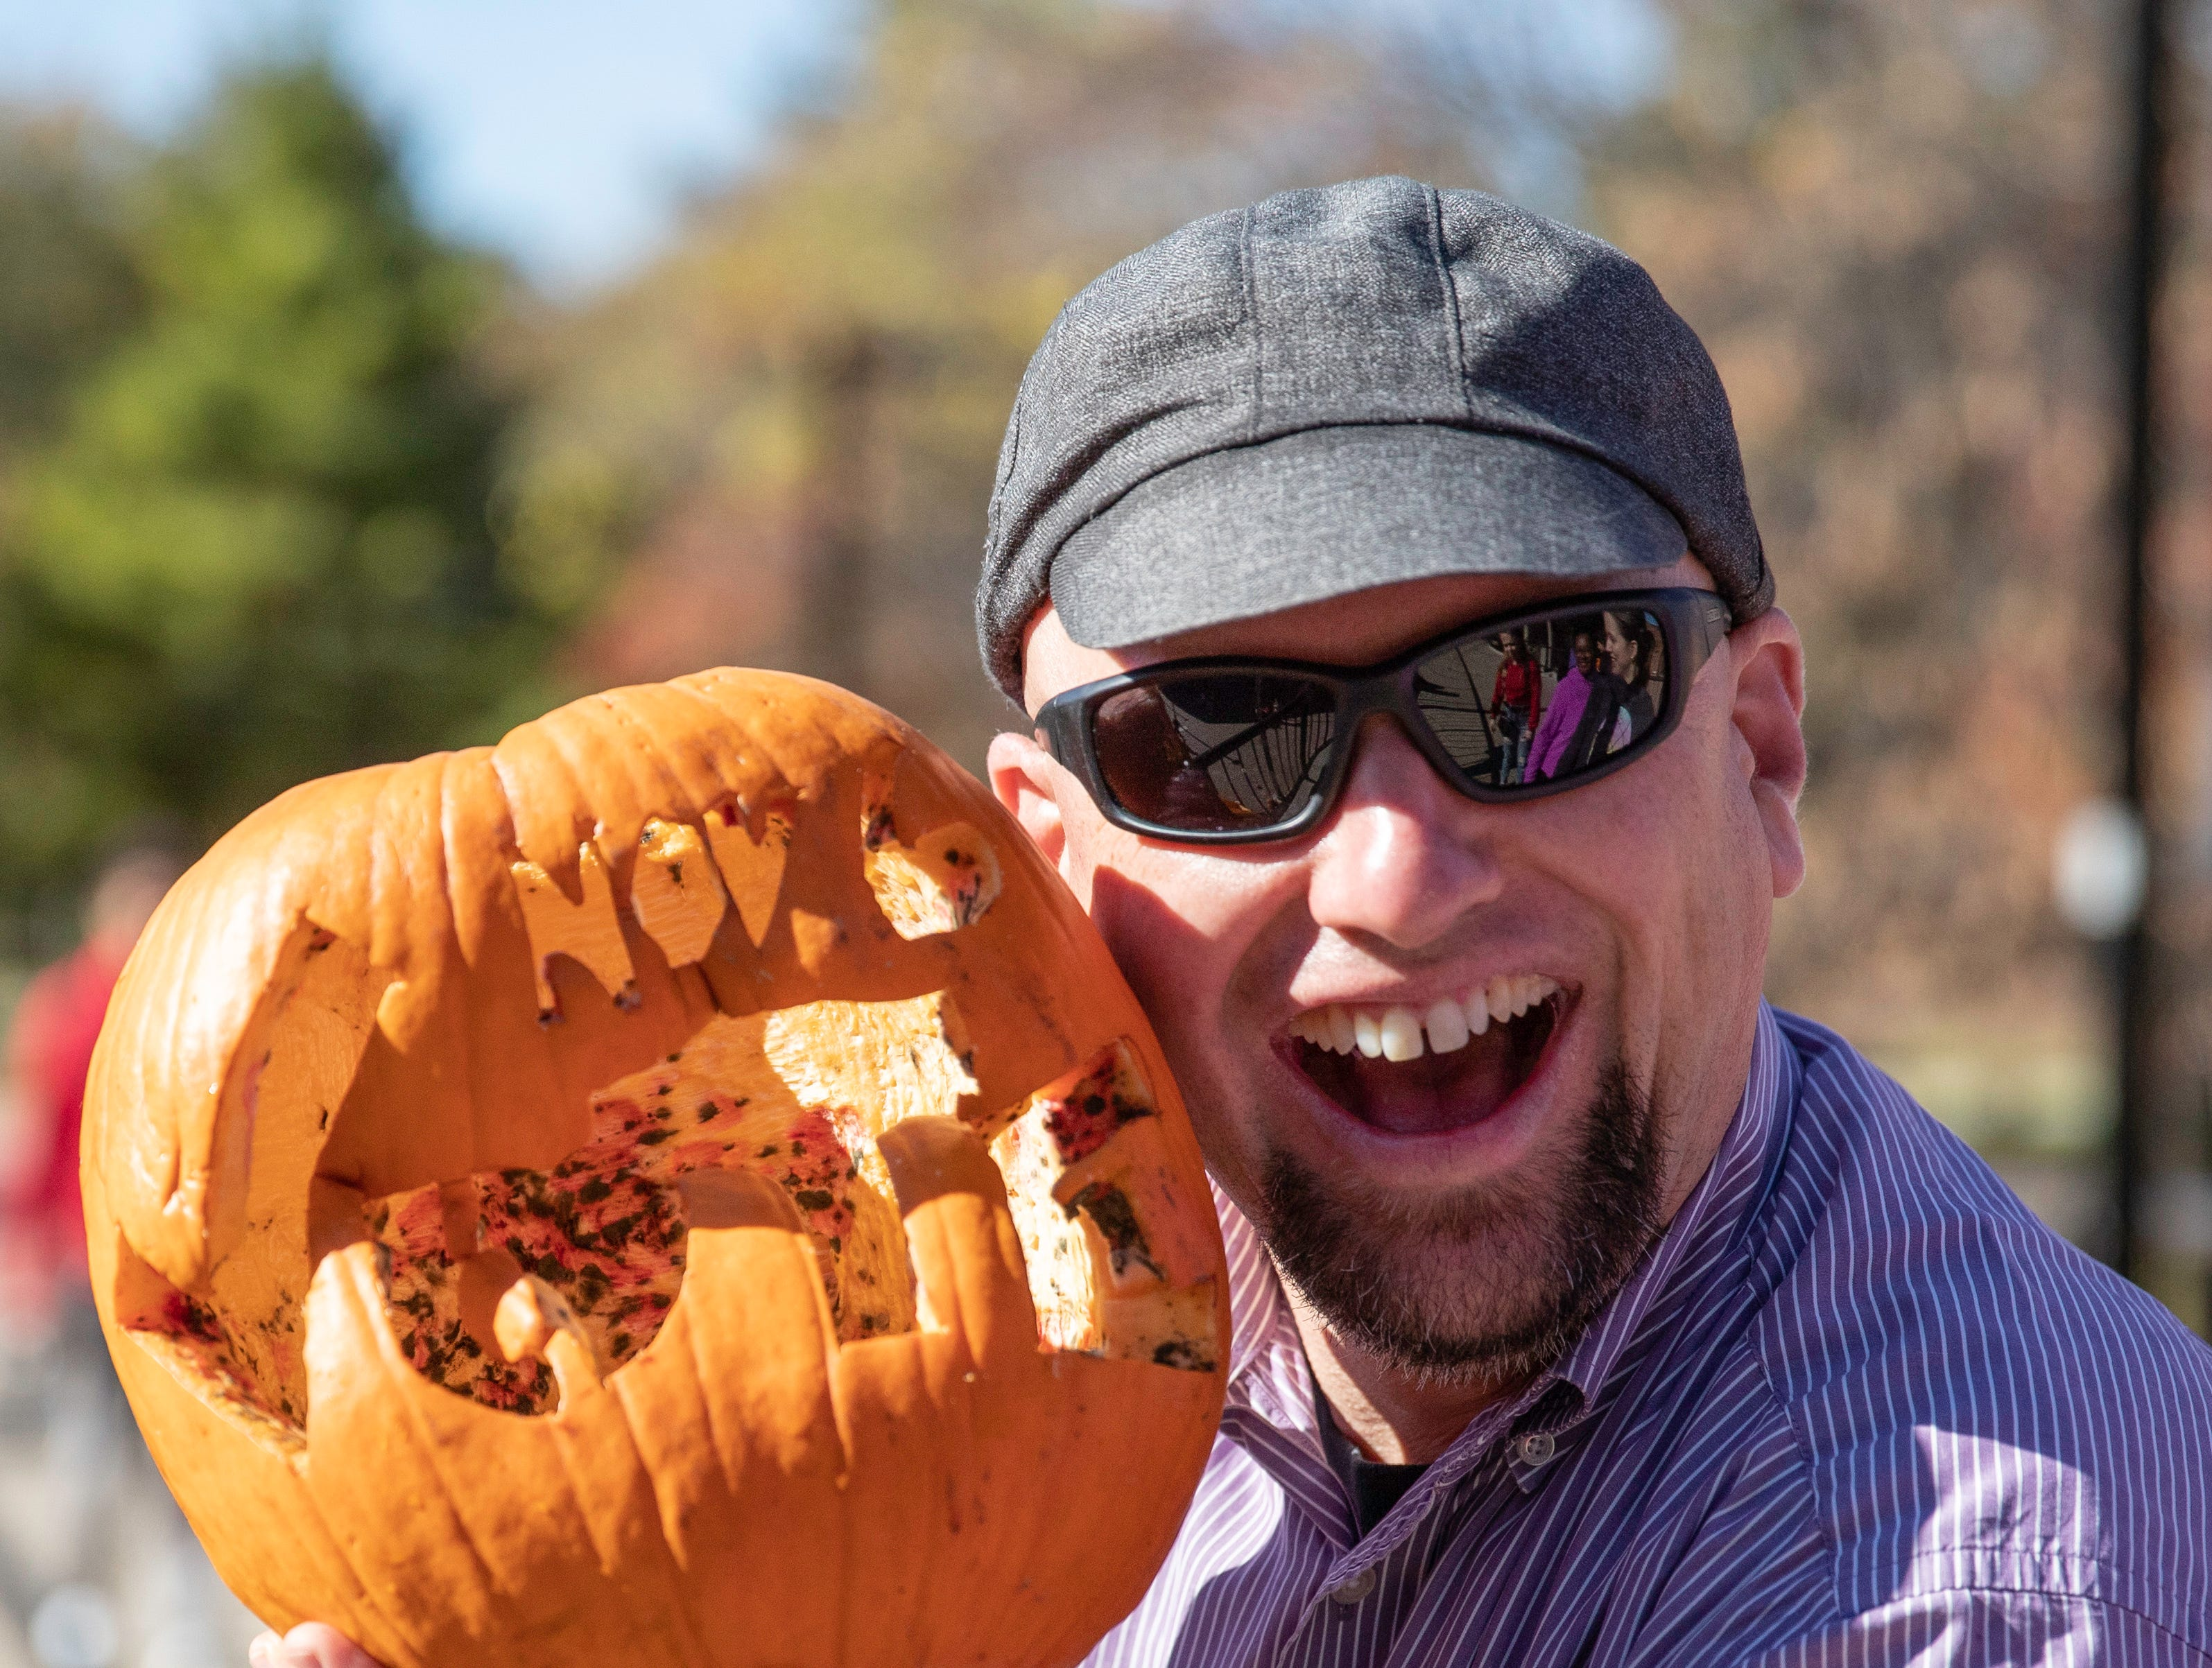 """Justin Mog, Ph.D., Assistant to the Provost for Sustainability Initiatives, holds up whats left of a """"Vote Nov. 6"""" pumpkin near the UofL Student Activities Center, Tuesday, Nov. 6, 2018 in Louisville Ky. """"This is quickly becoming one of my favorite events of the year! Not only does sustainability require that we compost, and vote, and relieve stress healthfully, but it also requires us to smash the old way of doing things and disrupt business as usual. That's what this event is all about."""" Mog said."""